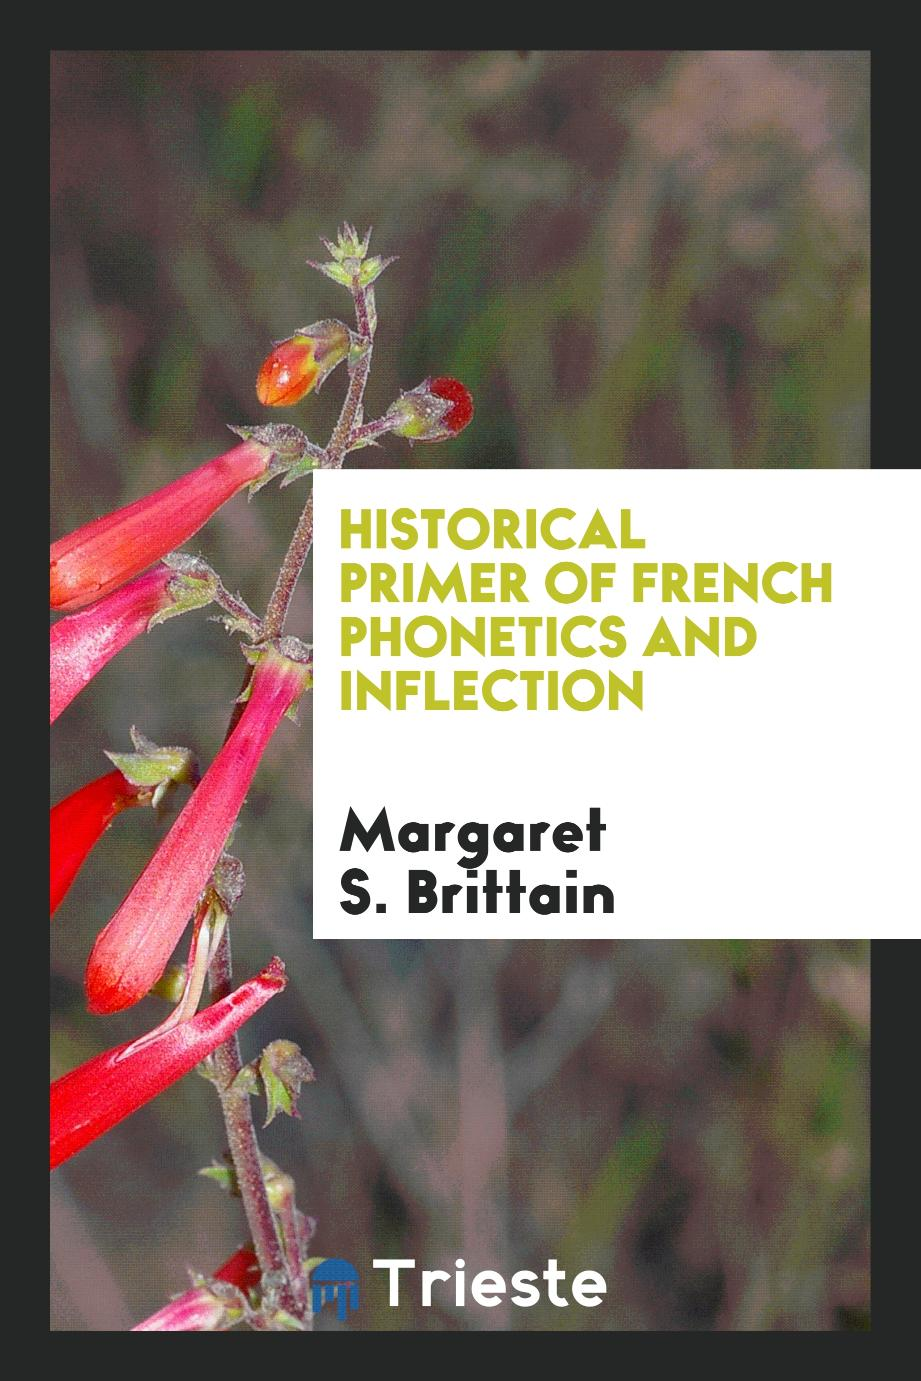 Historical Primer of French Phonetics and Inflection